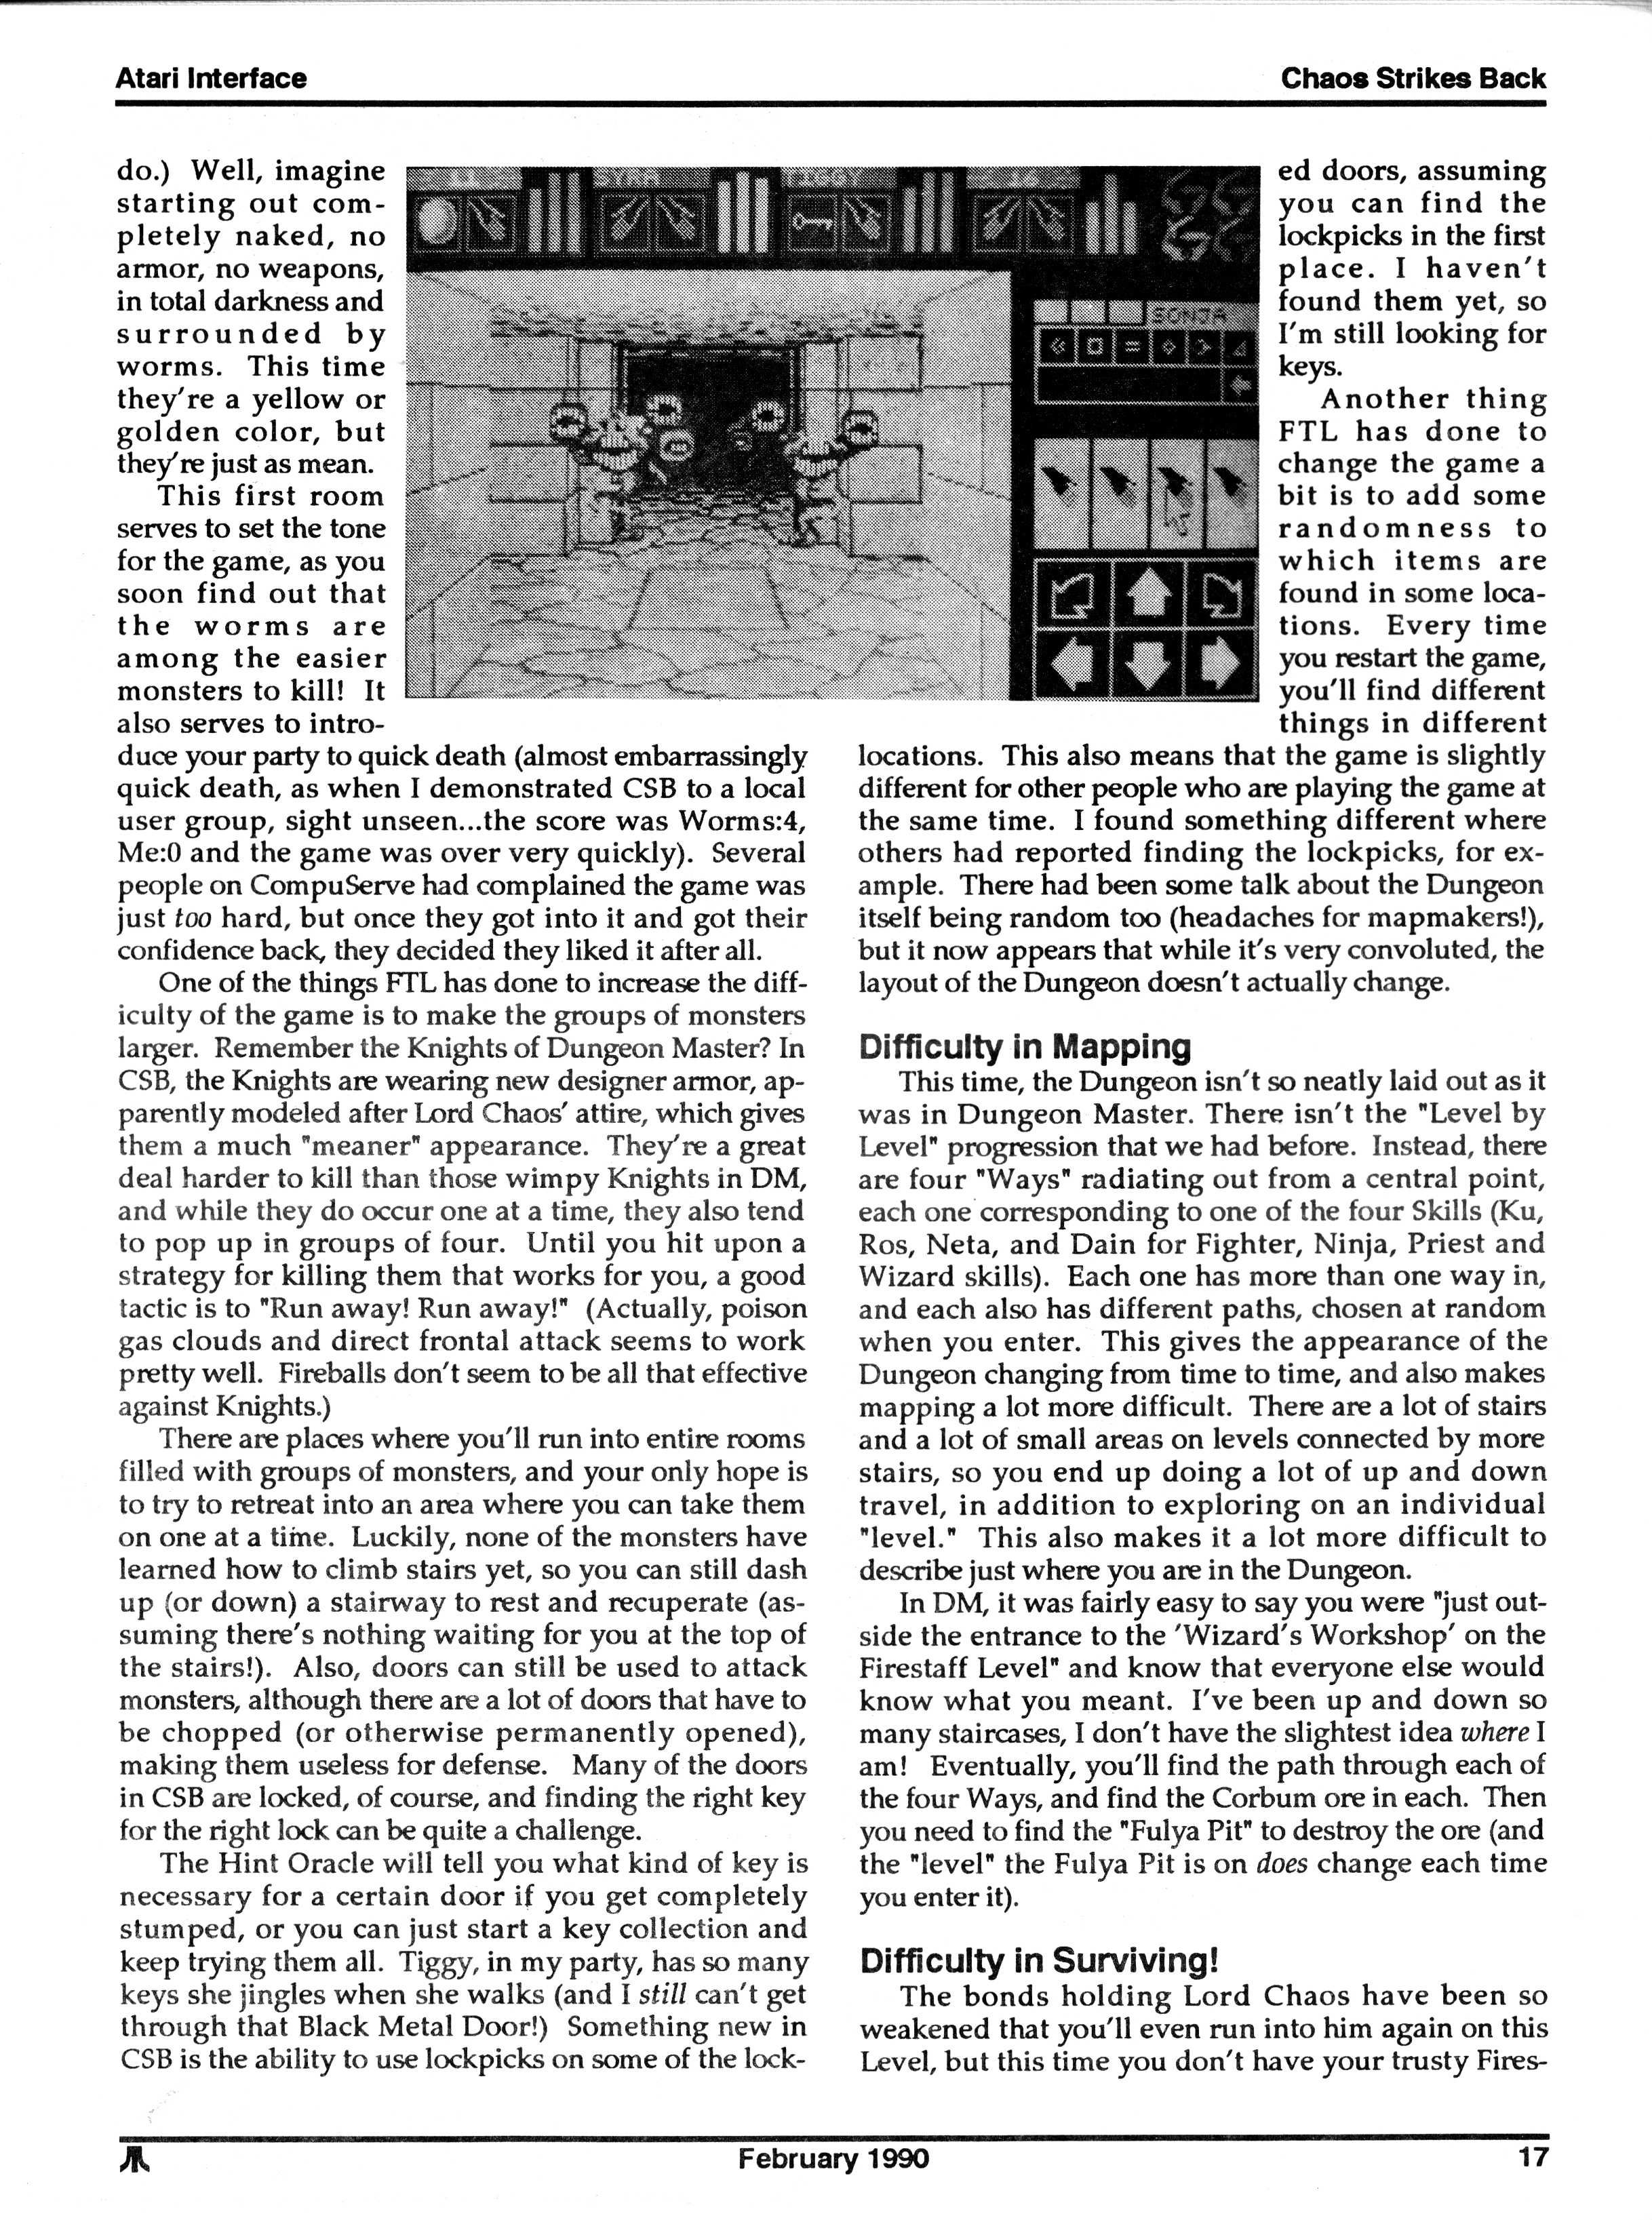 Chaos Strikes Back for Atari ST Review published in American magazine 'Atari Interface Magazine', Vol 2 No 2 February 1990, Page 17